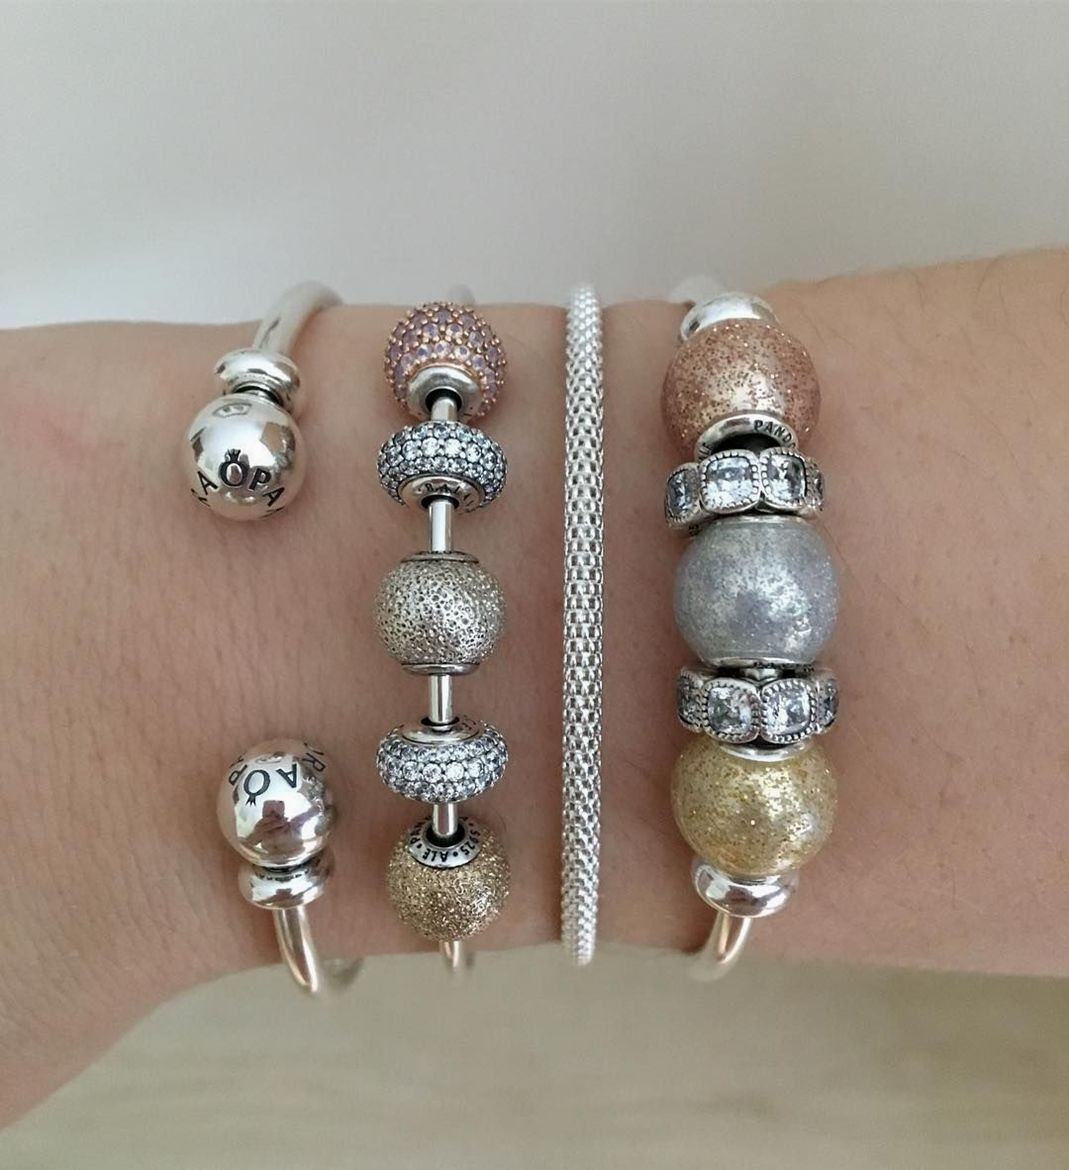 Pandora Charms Prices Pandora Only Grethe Pandora Jewelry